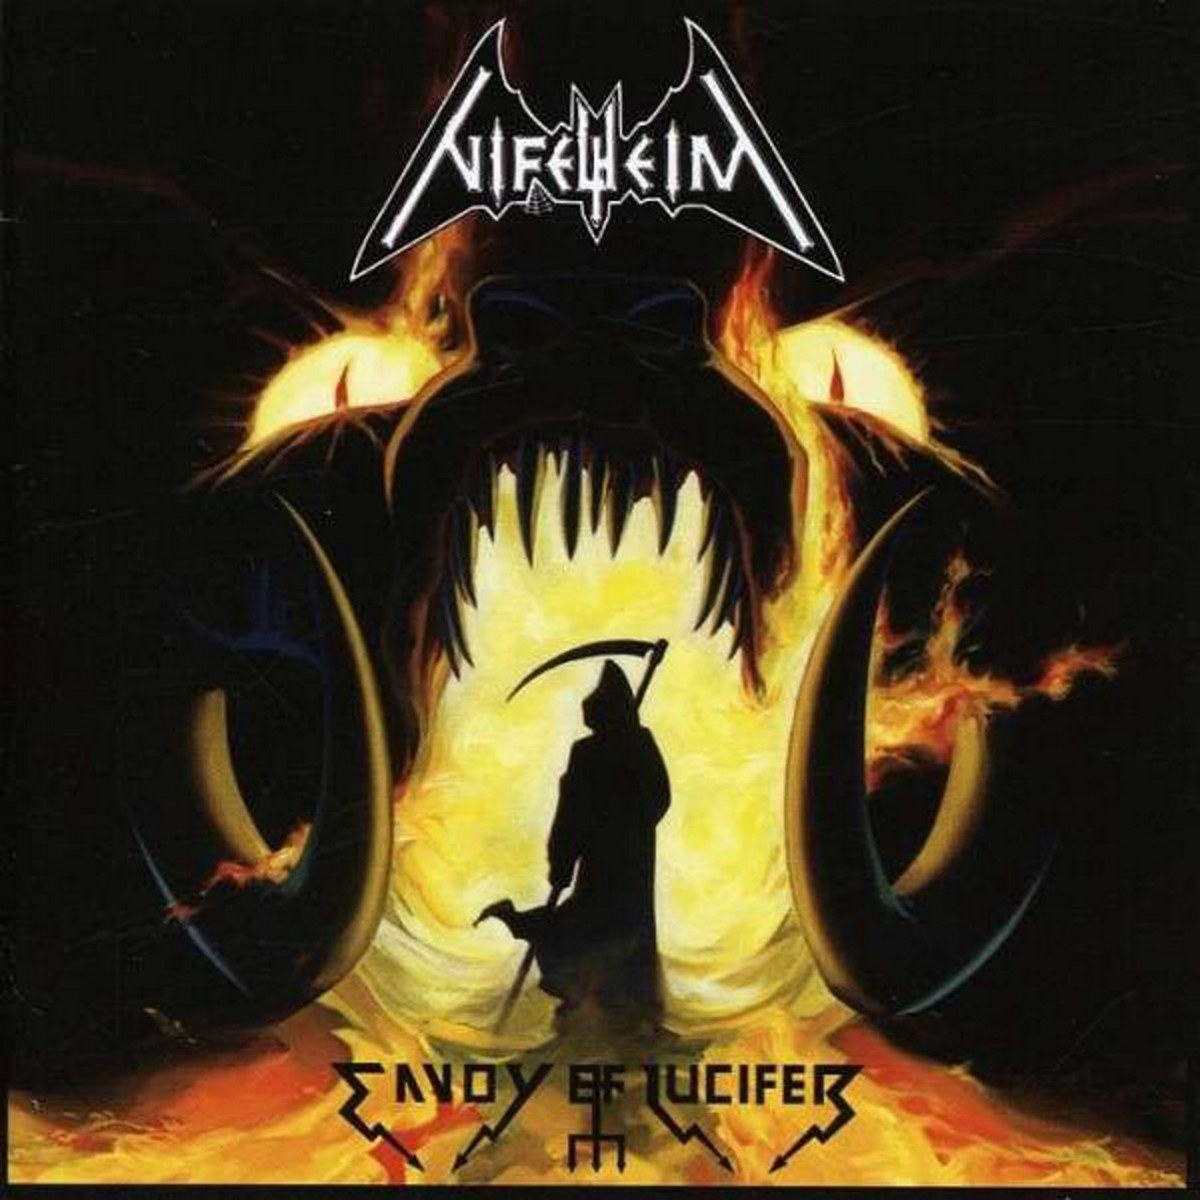 Review for Nifelheim - Envoy of Lucifer